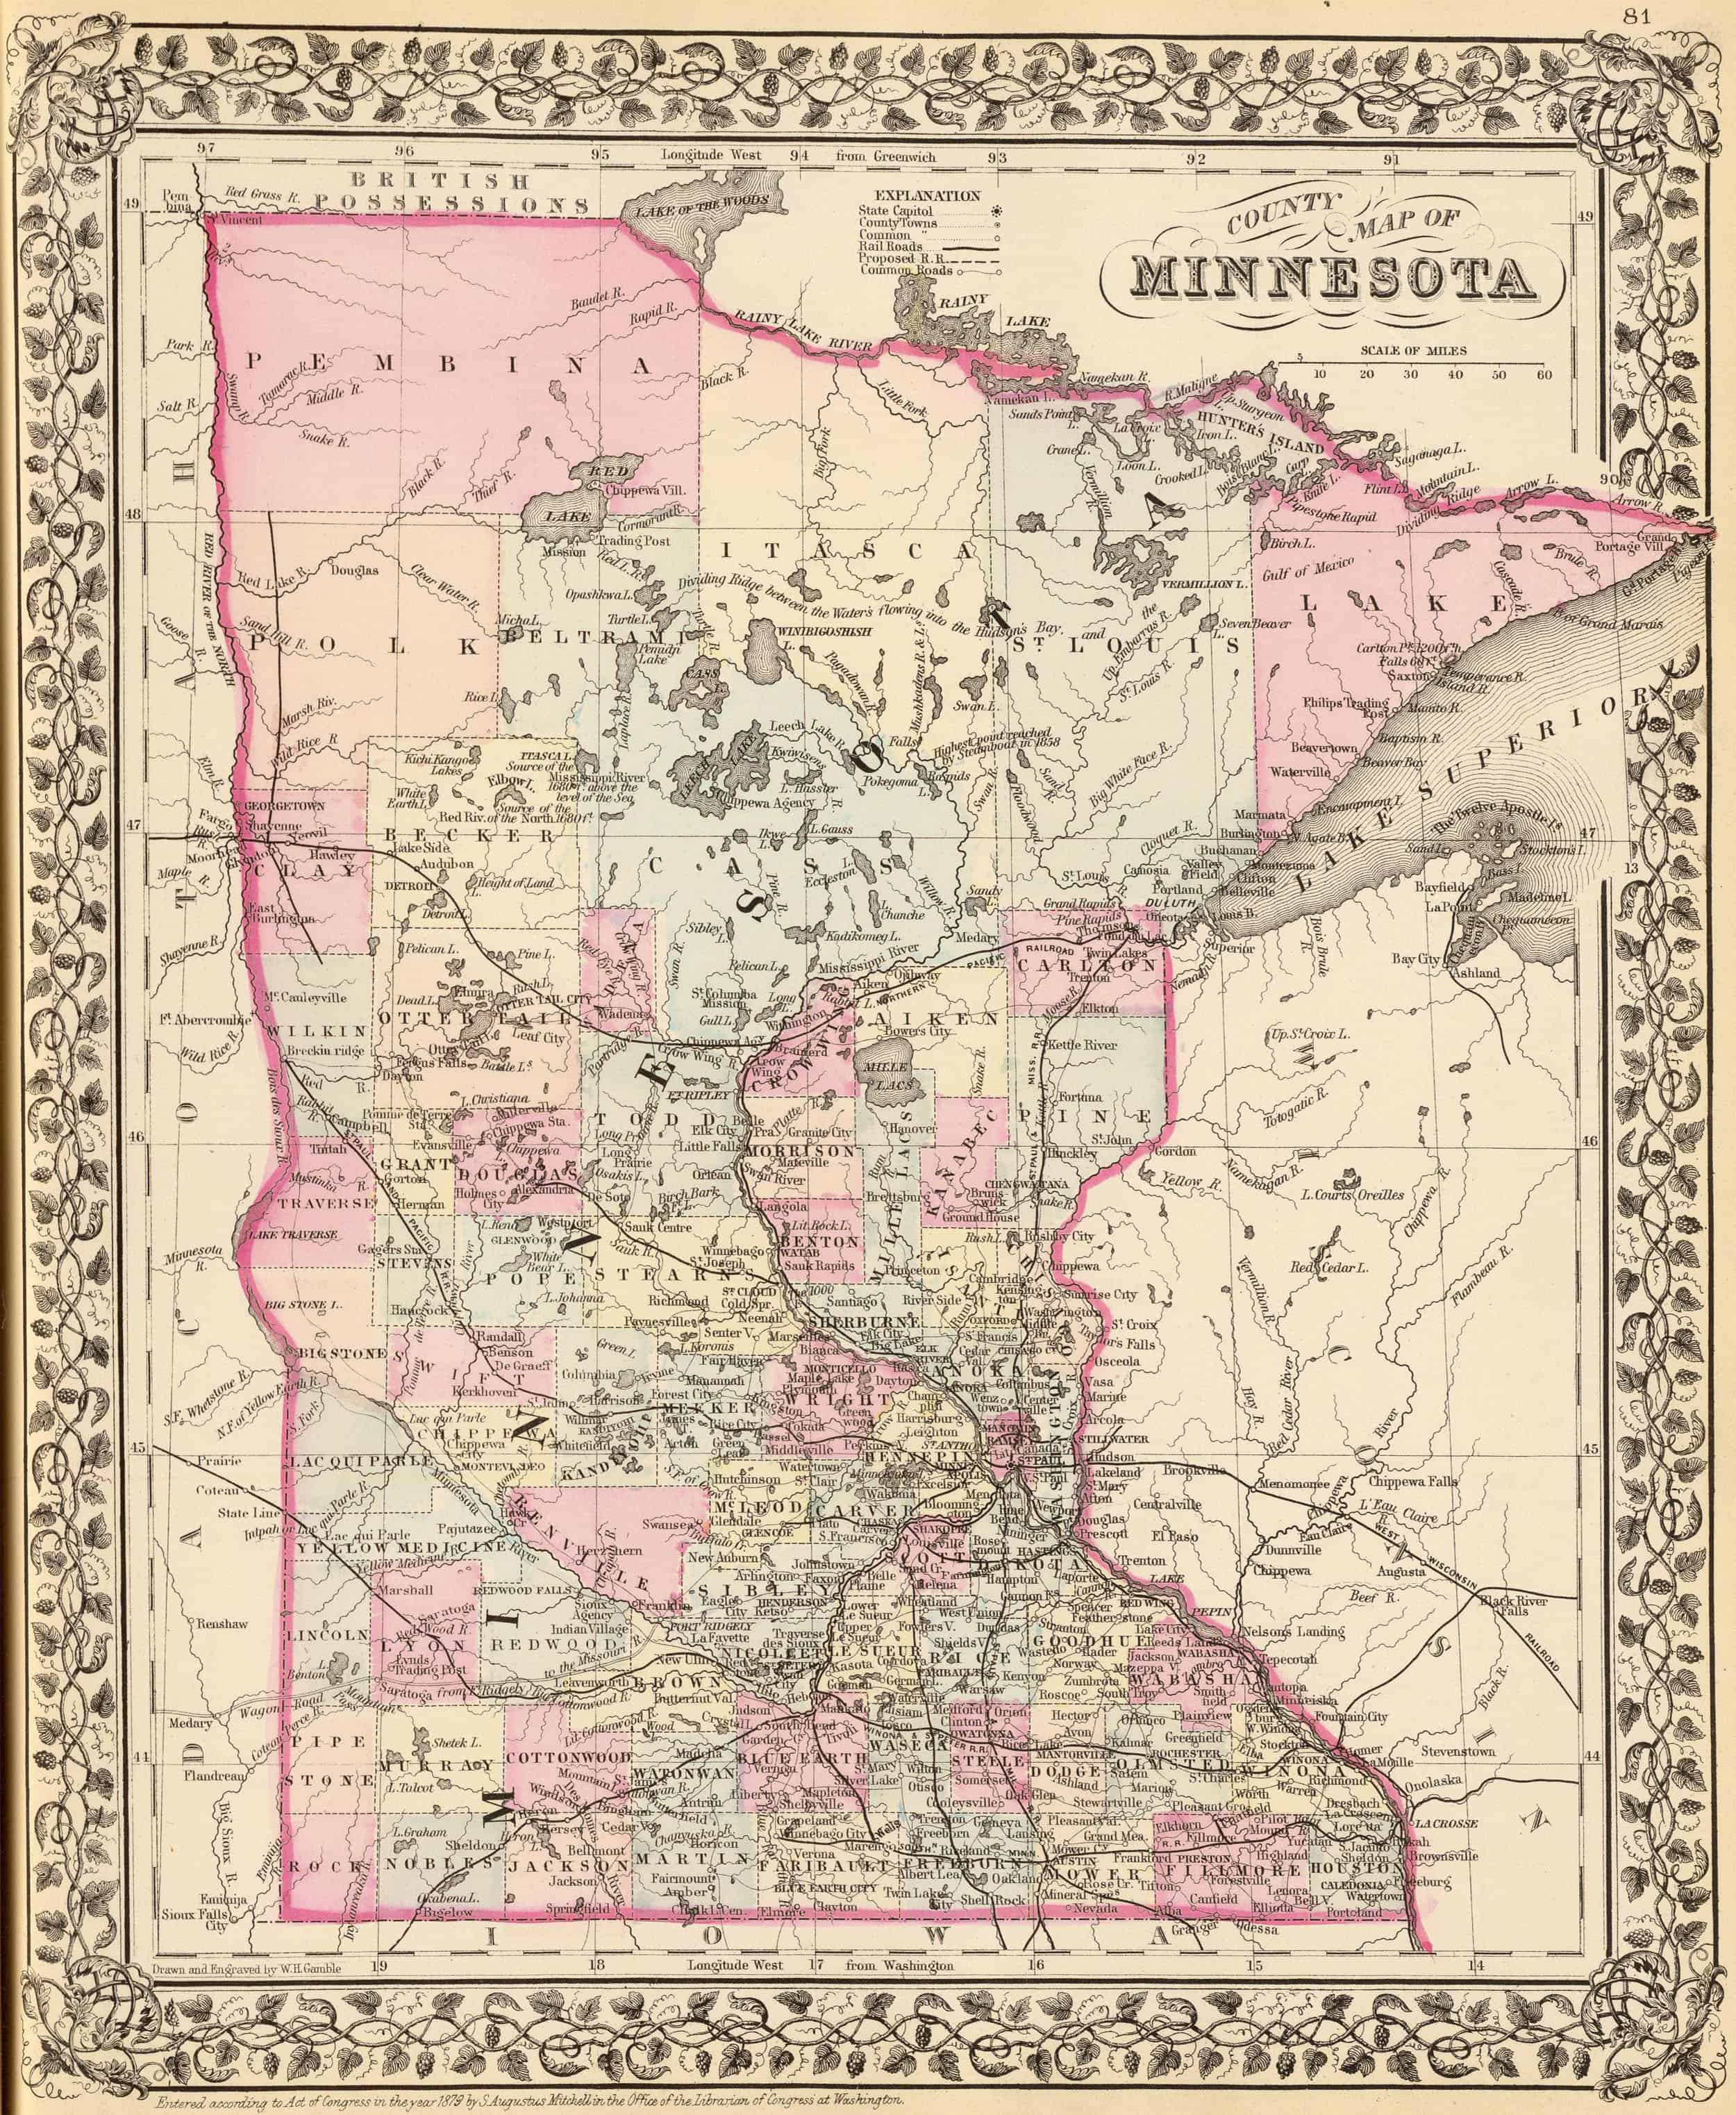 Old Historical City, County and State Maps of Minnesota on map of oregon, map of connecticut, map of colorado, map of georgia, two harbors minnesota, map of ohio, cities in minnesota, map of illinois, famous landmarks in minnesota, anoka minnesota, map of delaware, county map minnesota, minnetonka minnesota, map of alabama, map of missouri, explore minnesota, eagan minnesota, st cloud minnesota, map of florida, madison minnesota, map of michigan, rural minnesota, map of hawaii, andover minnesota, eden prairie minnesota, map of pennsylvania, grand marais minnesota, map of new jersey, princeton minnesota, map of virginia, marcell minnesota, google maps minnesota, map of oklahoma, map of germany, glenwood minnesota, willmar minnesota, buffalo minnesota,